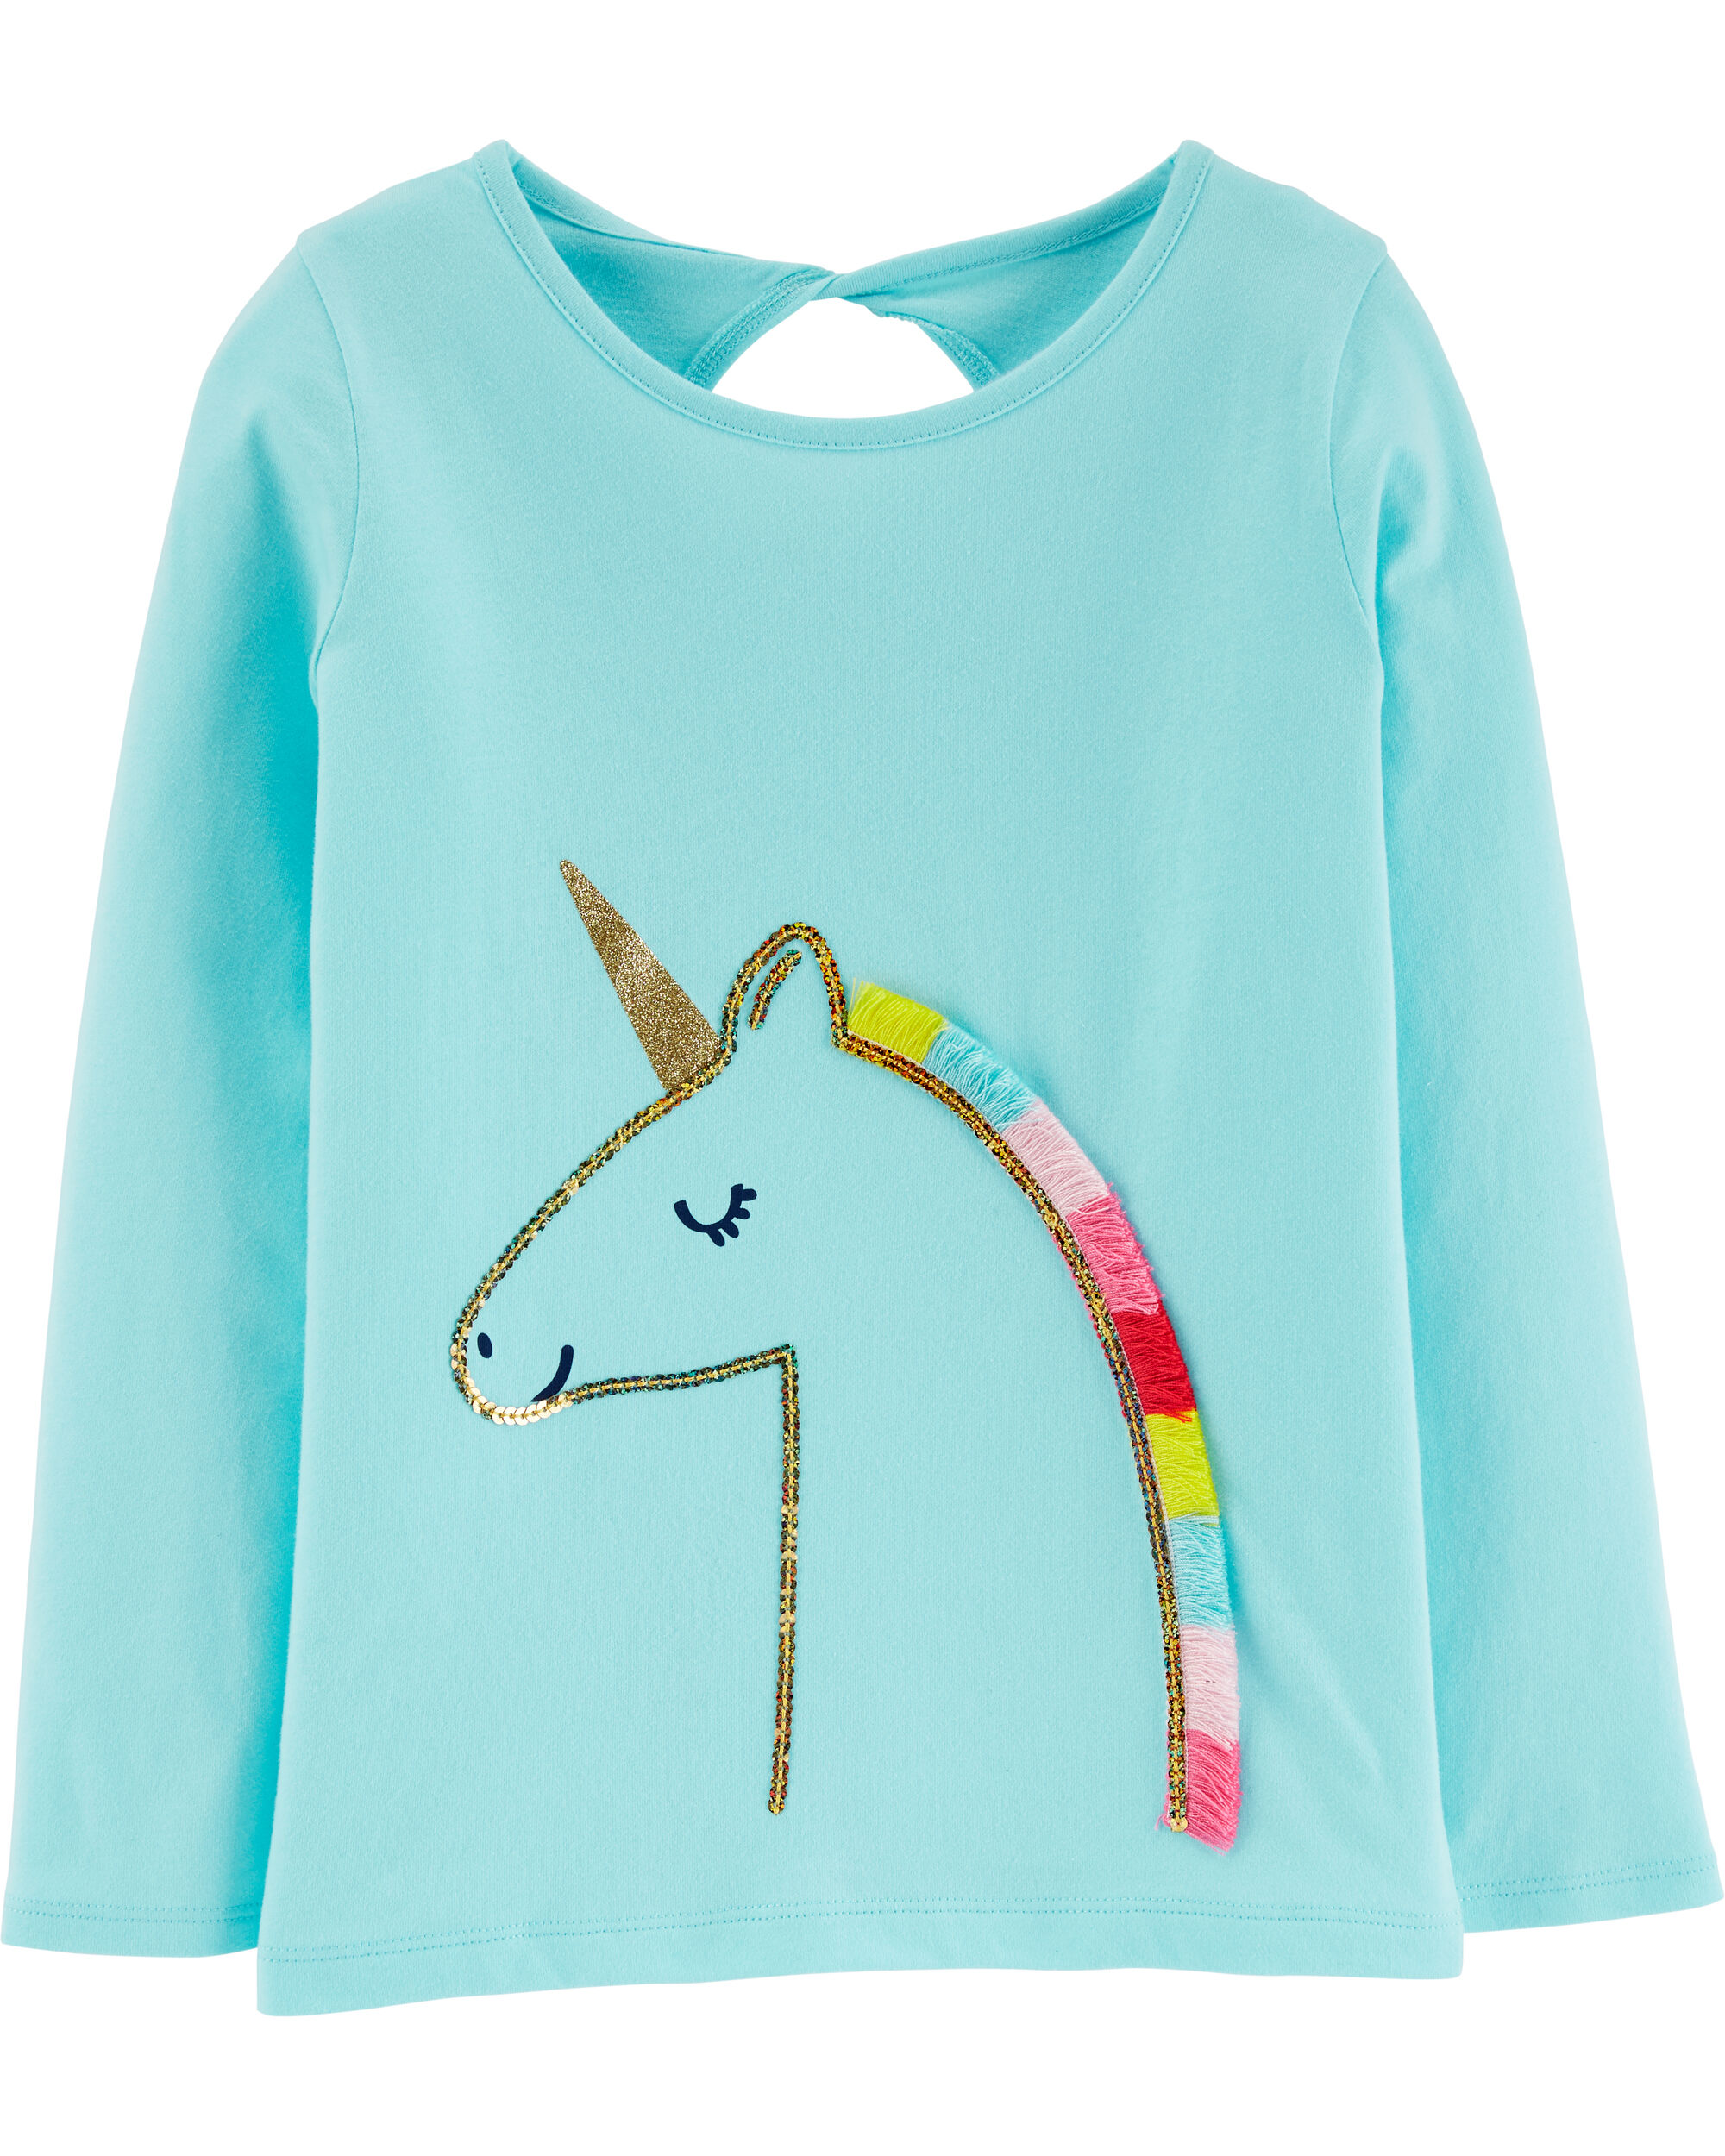 *CLEARANCE* Sequin Unicorn Jersey Tee